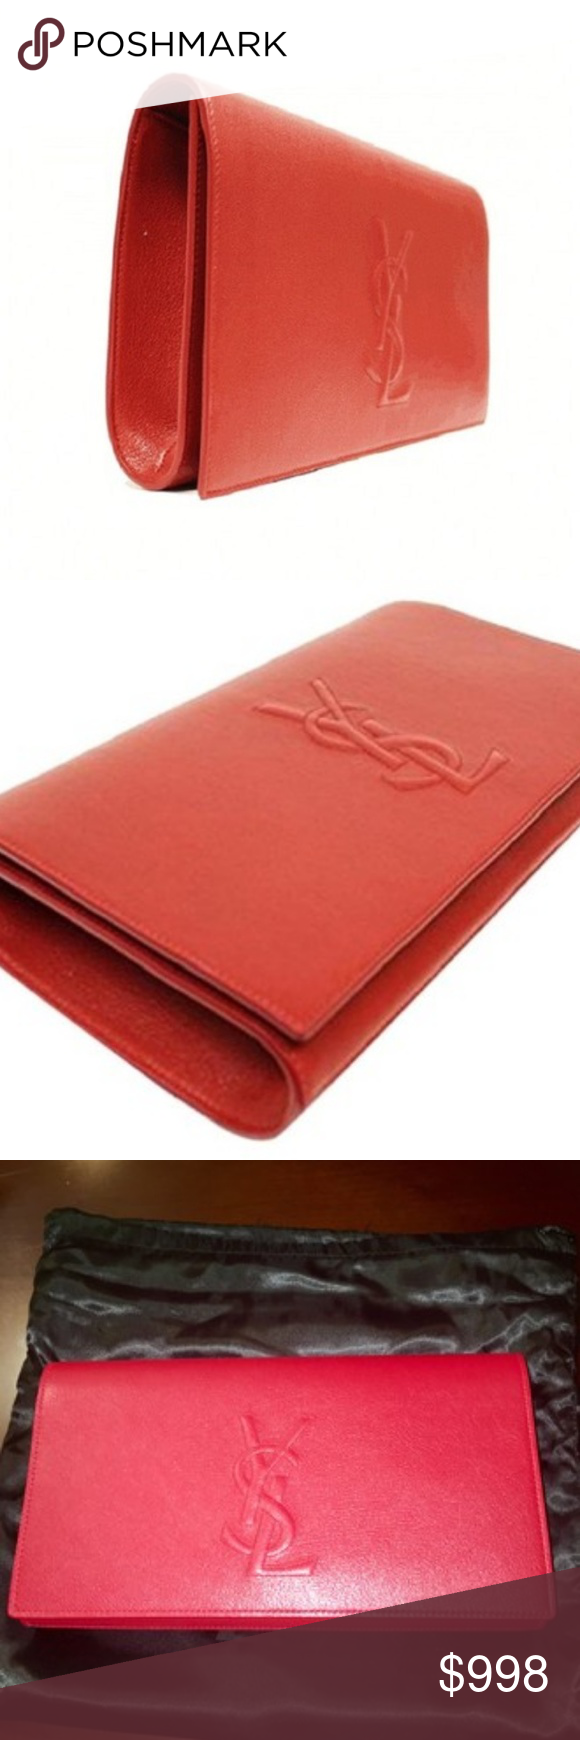 2b742d6c8 Spotted while shopping on Poshmark: YSL Yves Saint Laurent Red Leather  Large Clutch! #poshmark #fashion #shopping #style #Saint Laurent #Handbags